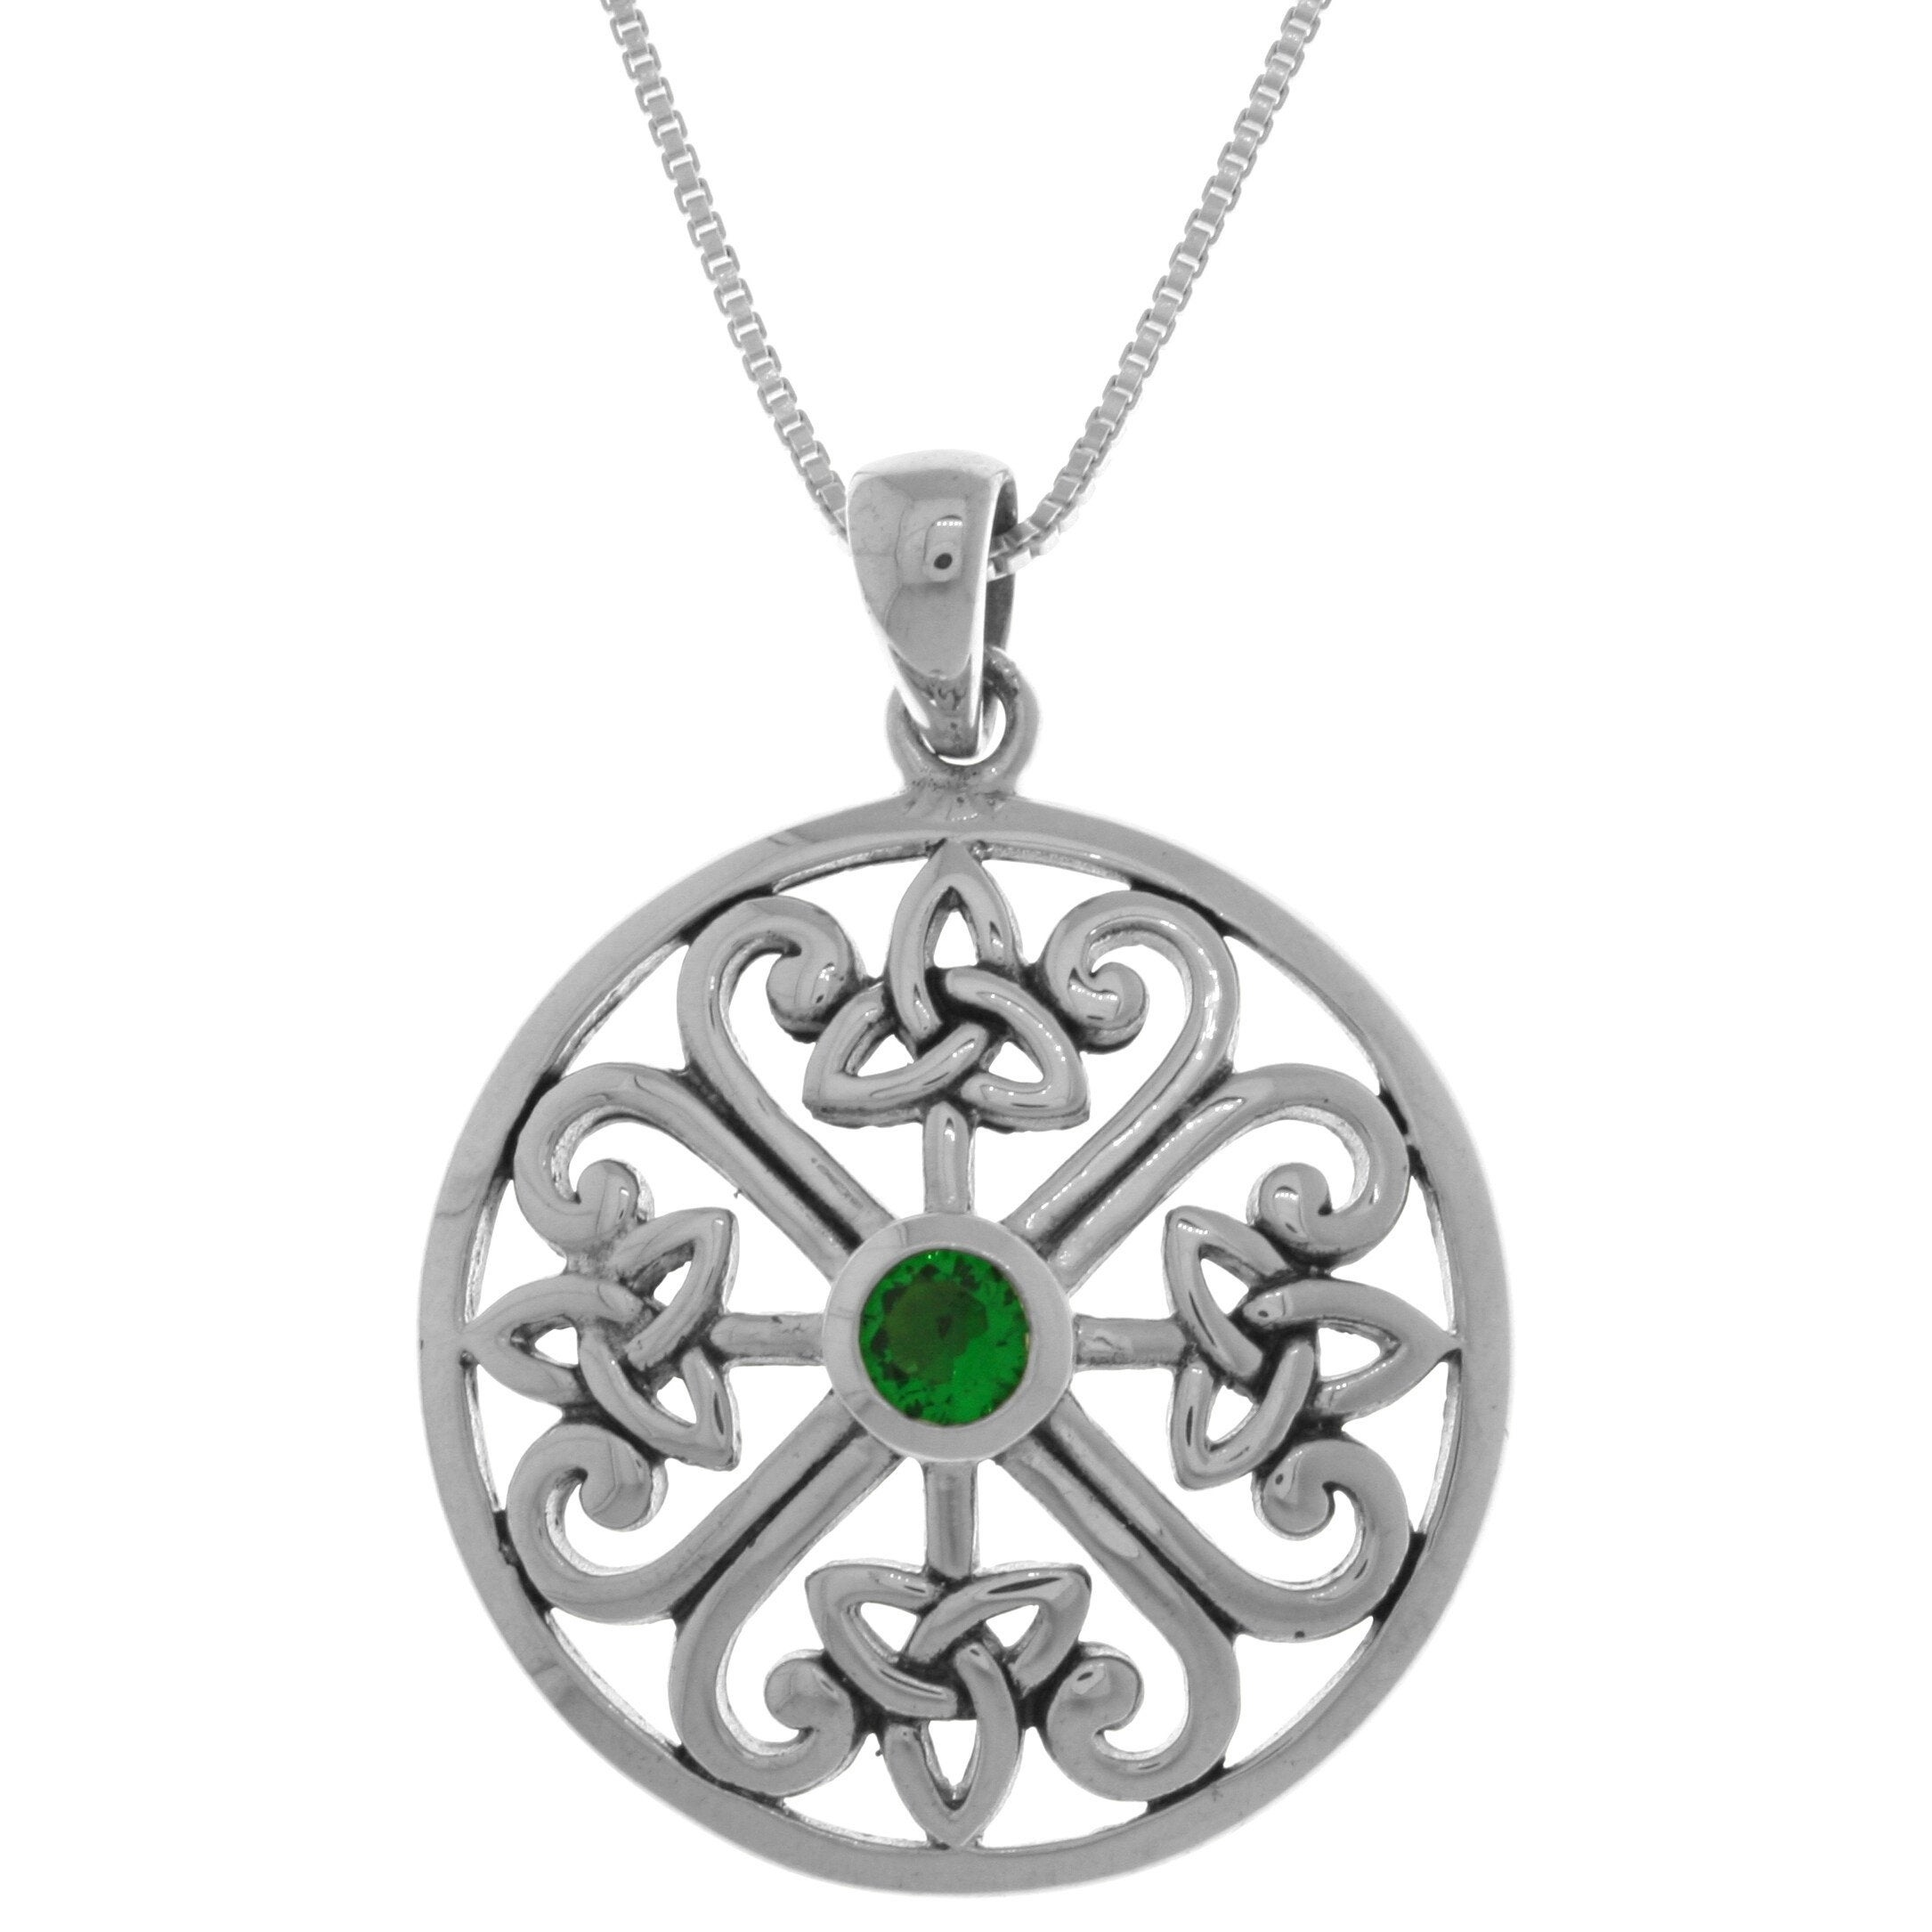 Celtic Trinity Knot Triquetra Pendant .925 Sterling Silver Black Open Charm